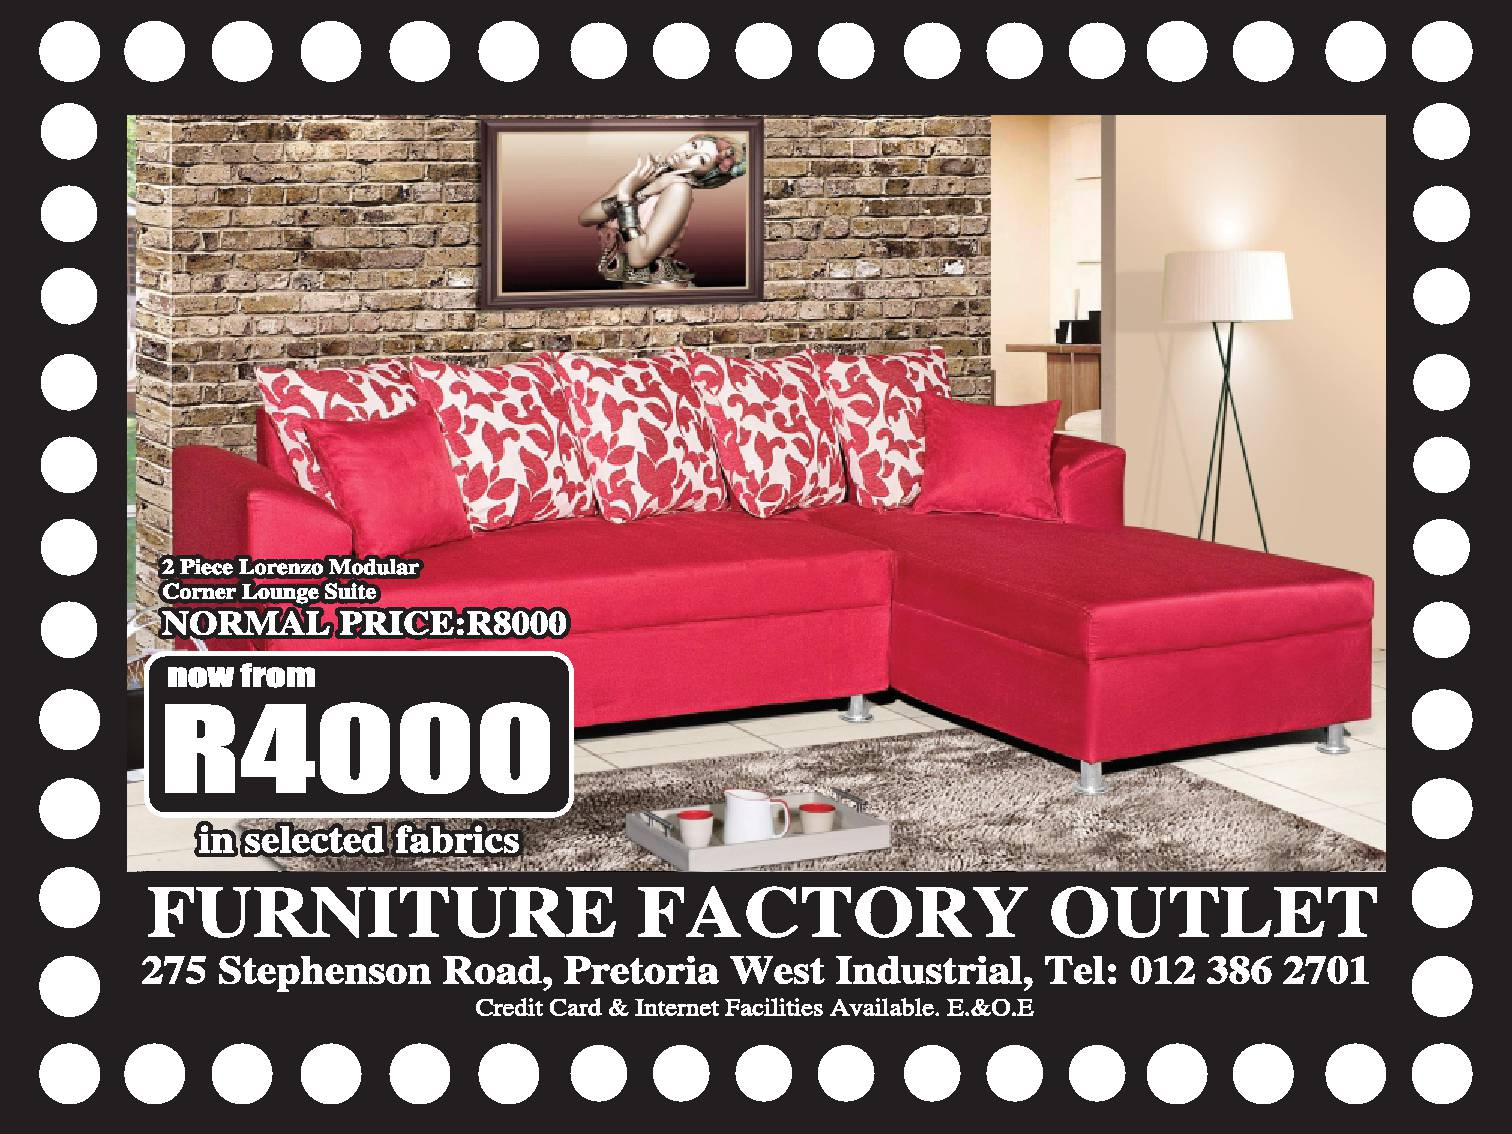 Furniture factory outlet pretoria junk mail business for Furniture factory outlet